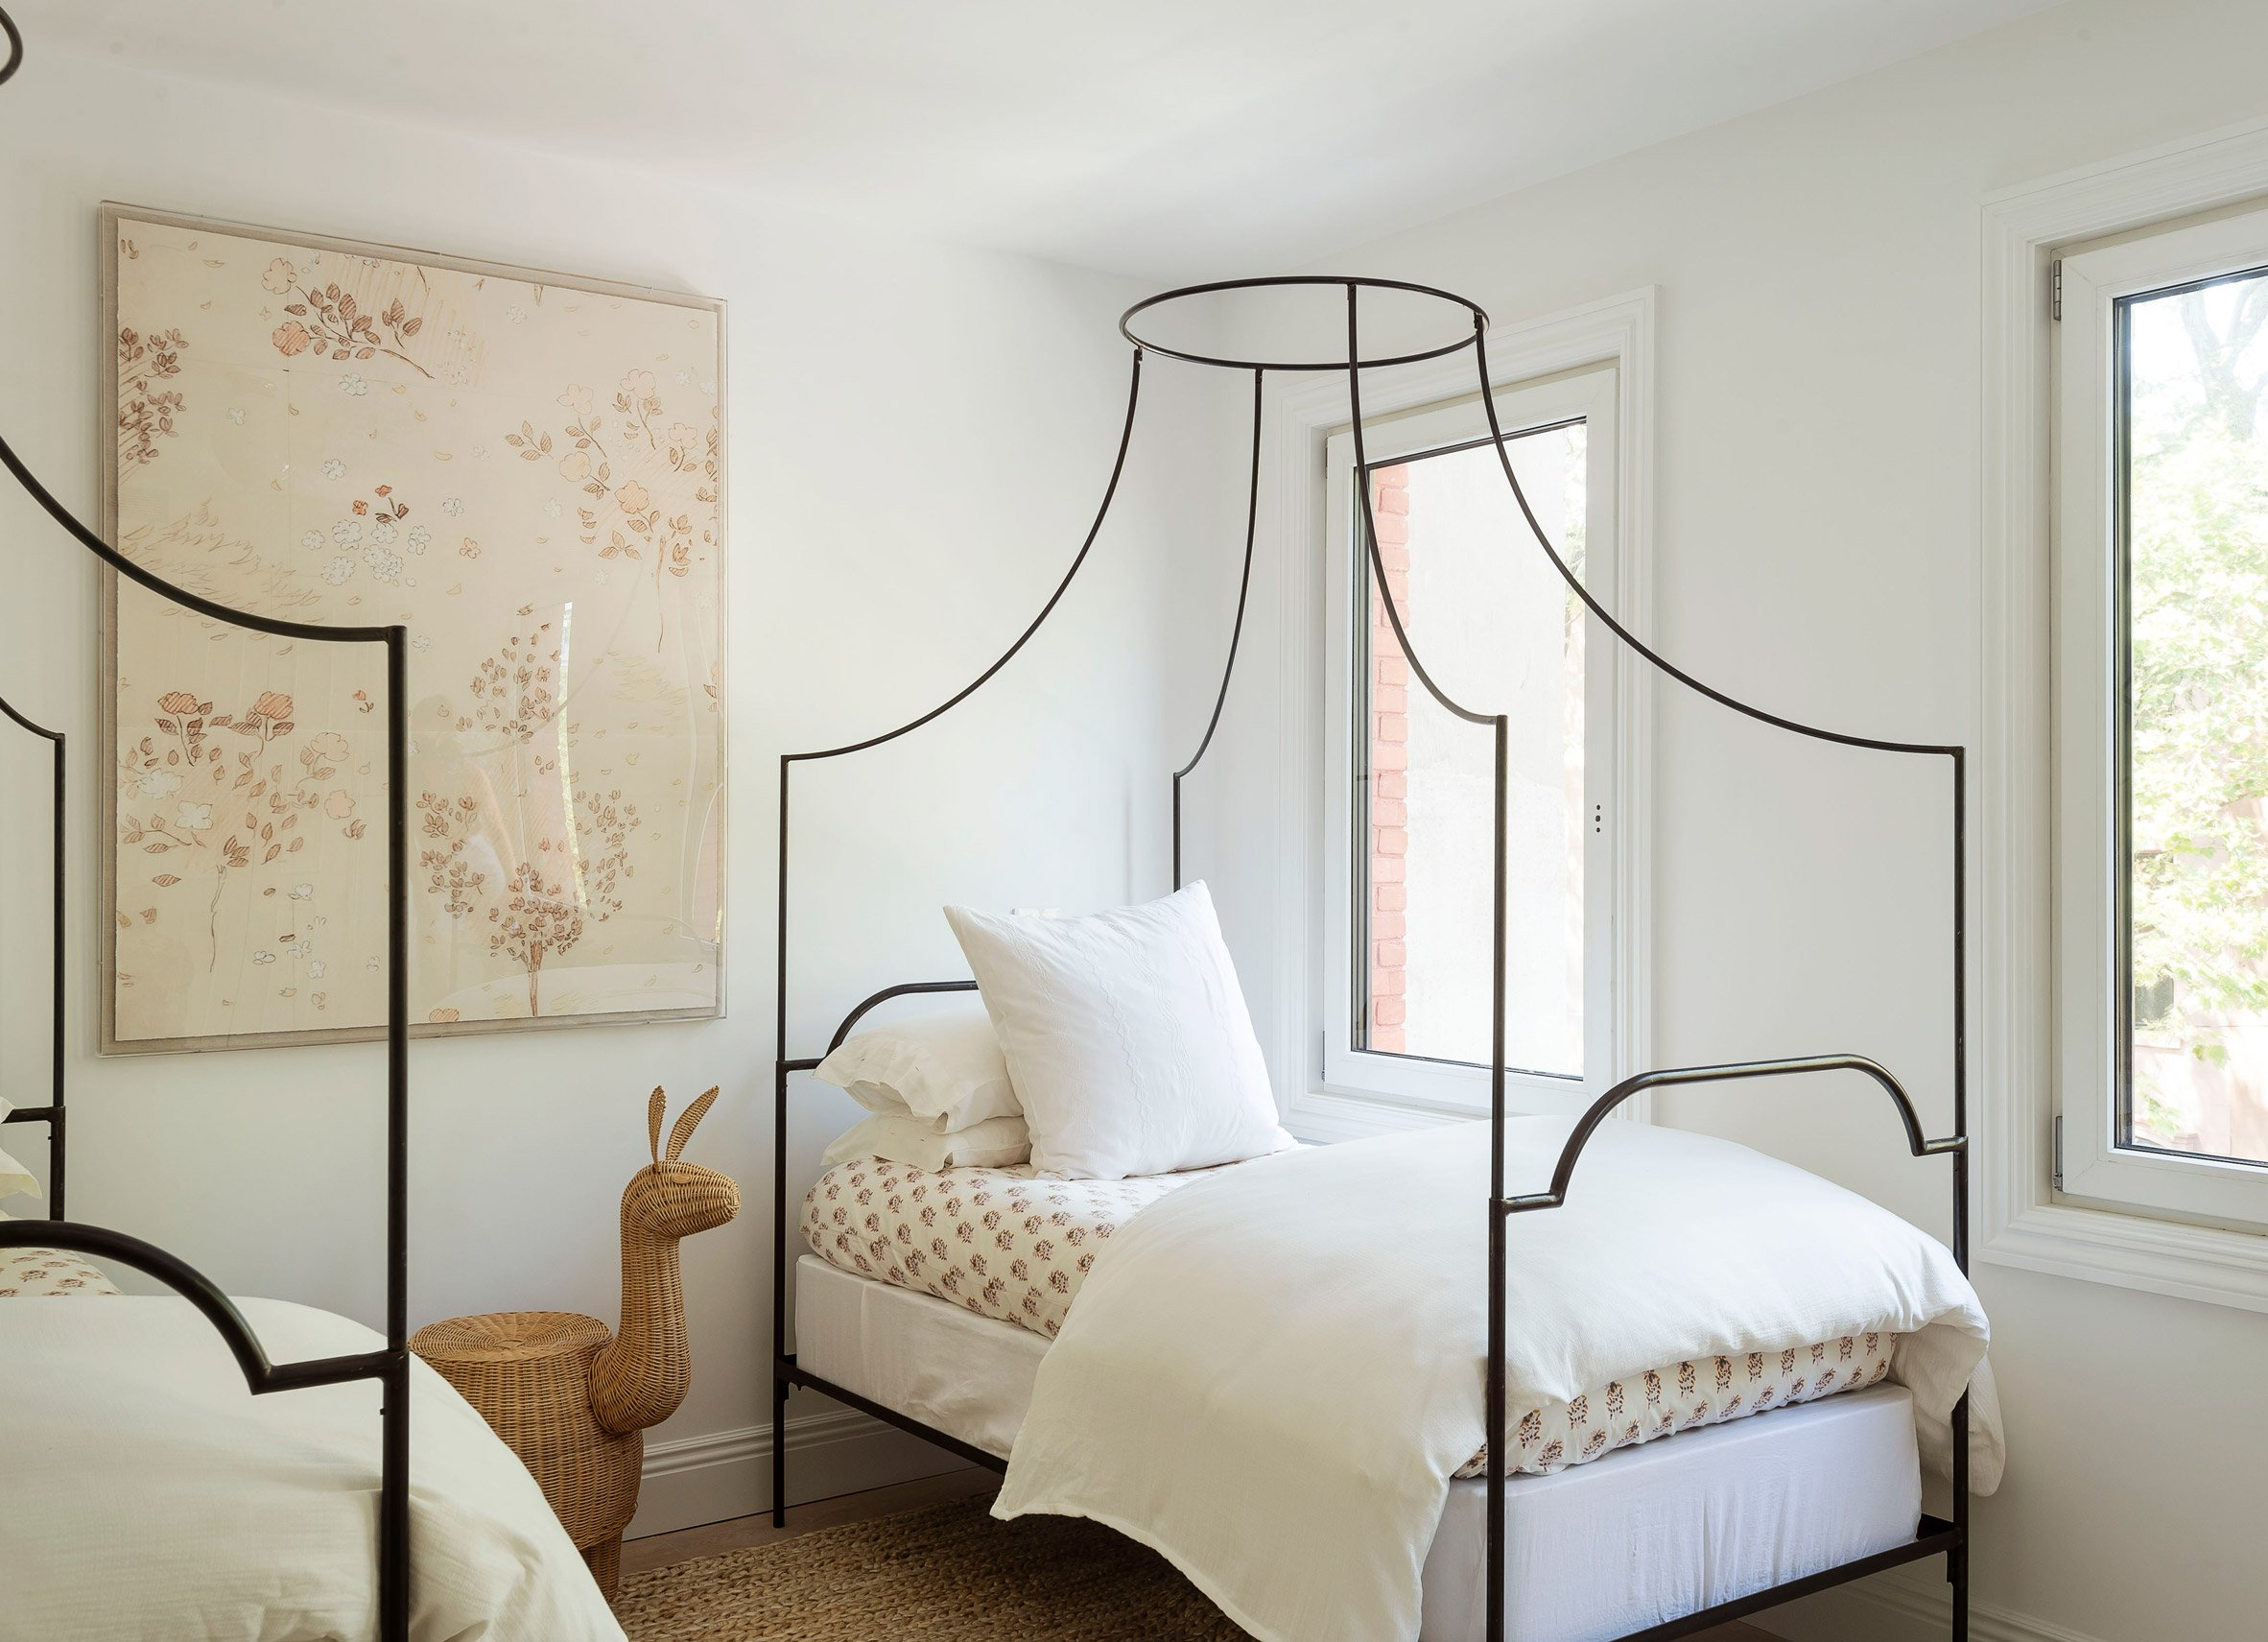 The Sackett Street townhouse's children's bedroom with bespoke twin beds